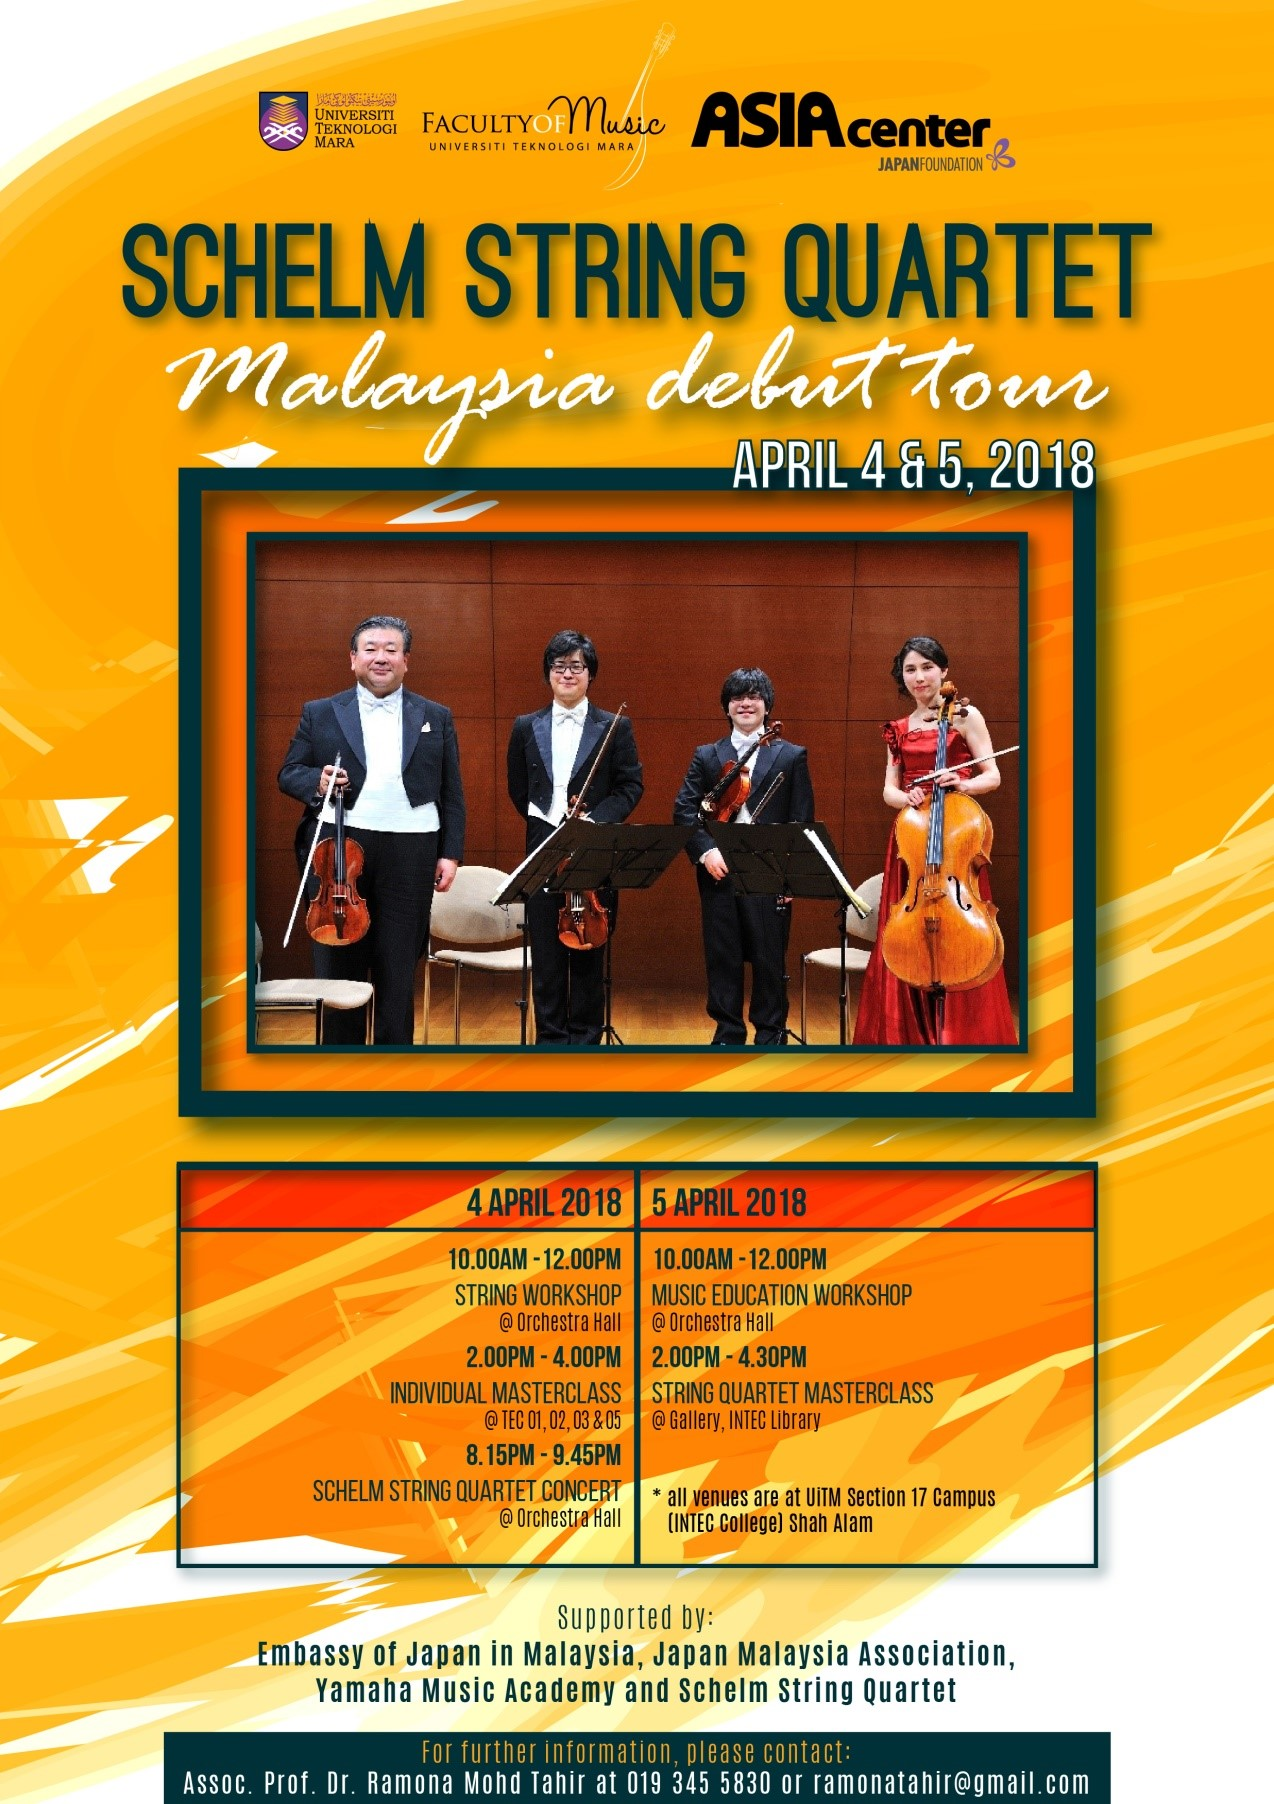 SCHELM STRING QUARTET (JAPAN)  MALAYSIA DEBUT TOUR